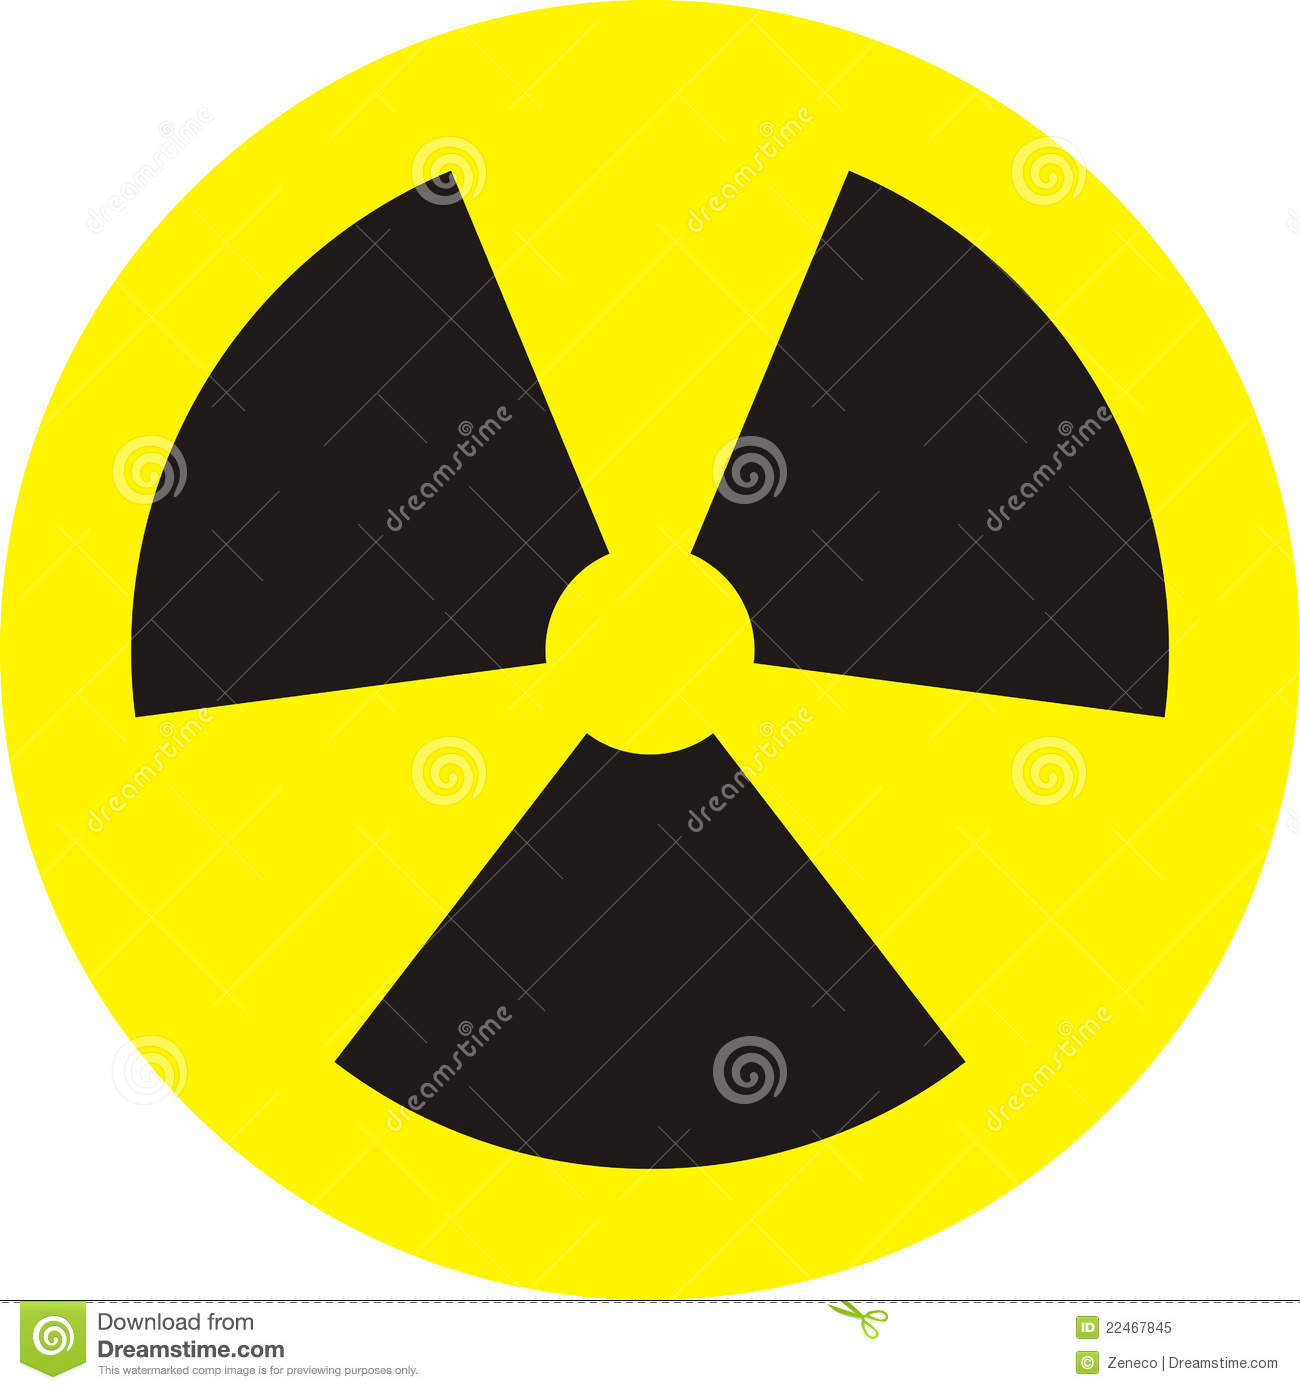 Radioactivity Royalty Free Stock Photo - Image: 22467845: dreamstime.com/royalty-free-stock-photo-radioactivity-image22467845